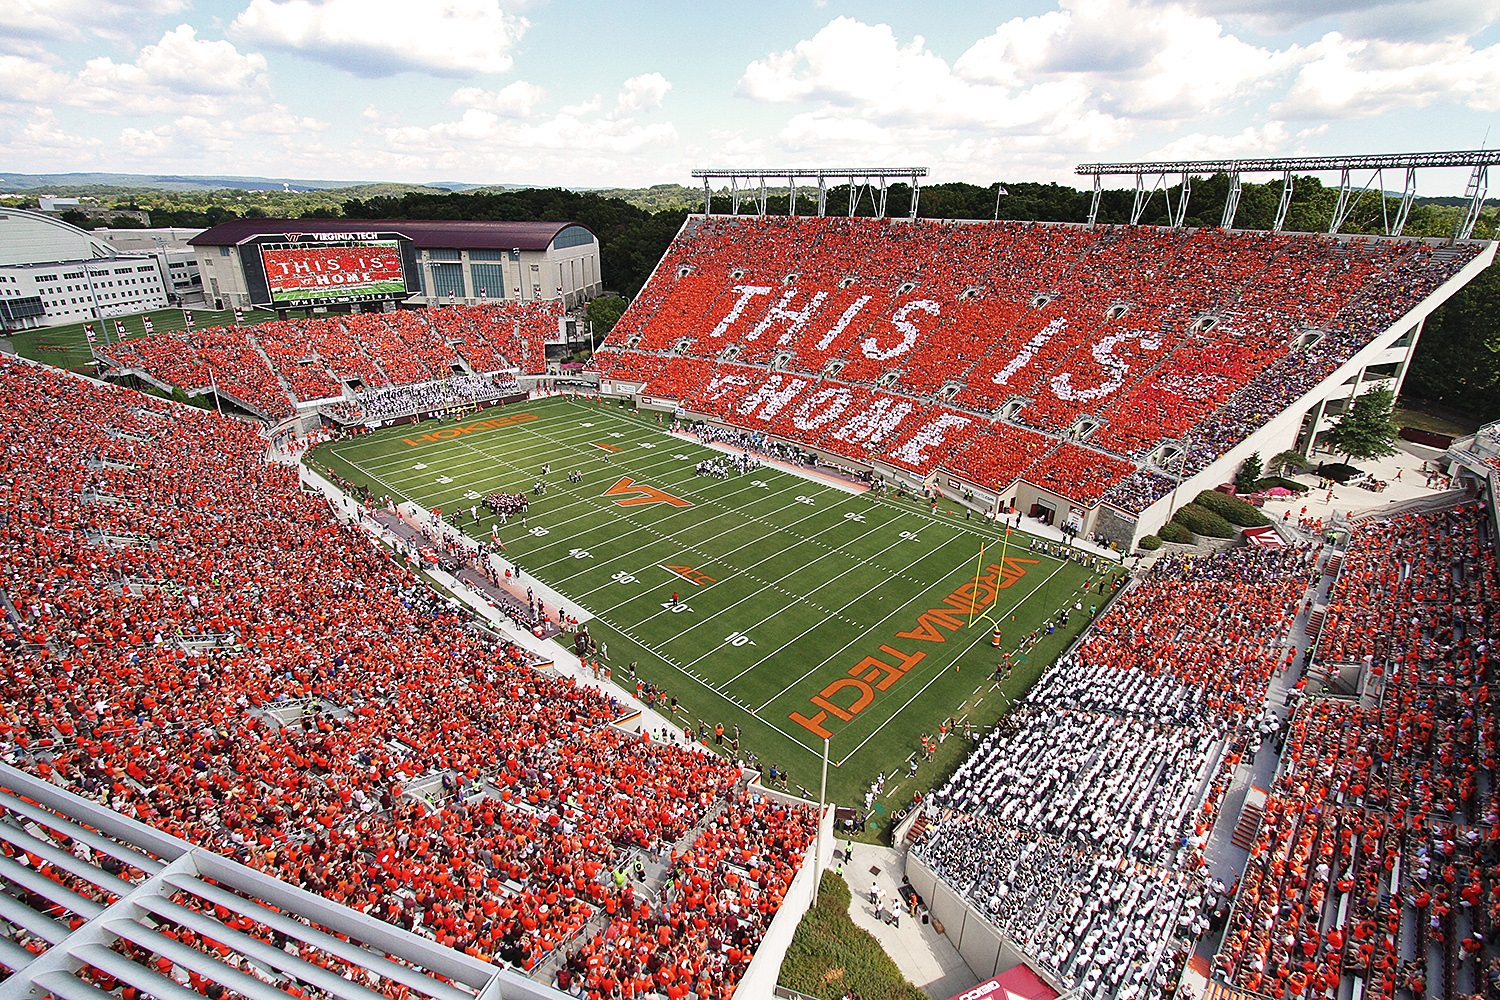 Vt_fb_this_is_home_2016-1